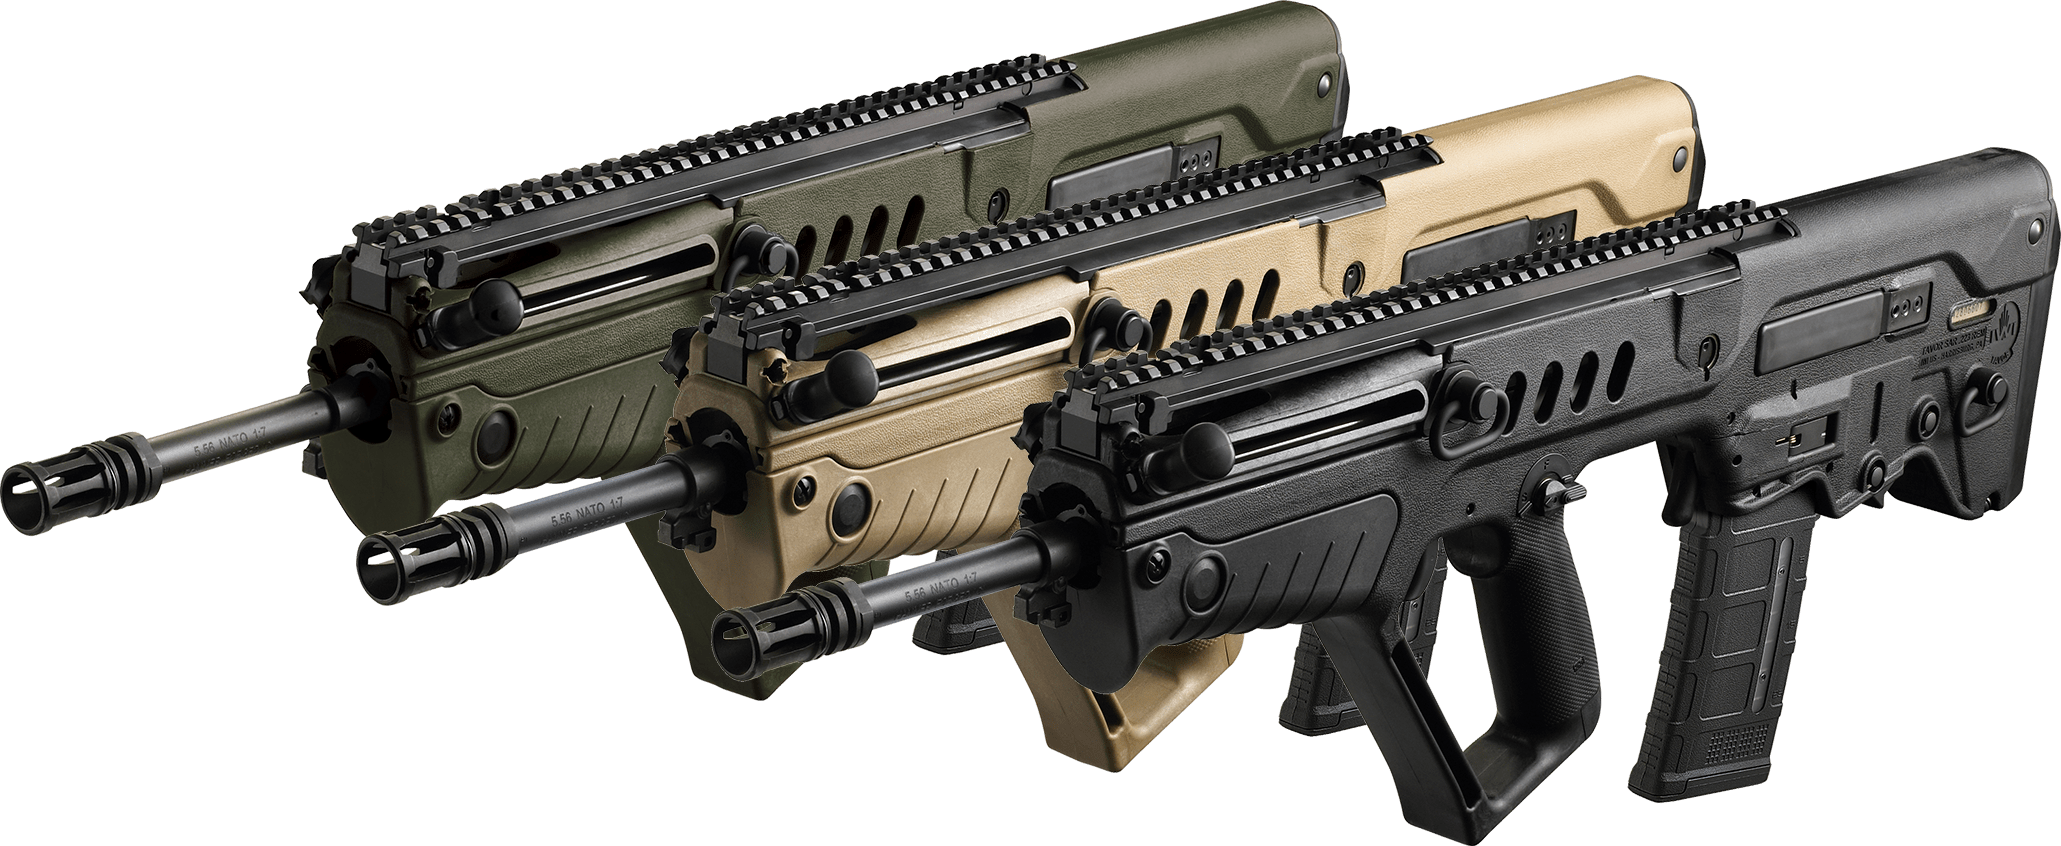 Is the Short Barrel Rifle (SBR) Obsolete? - The Truth About Guns